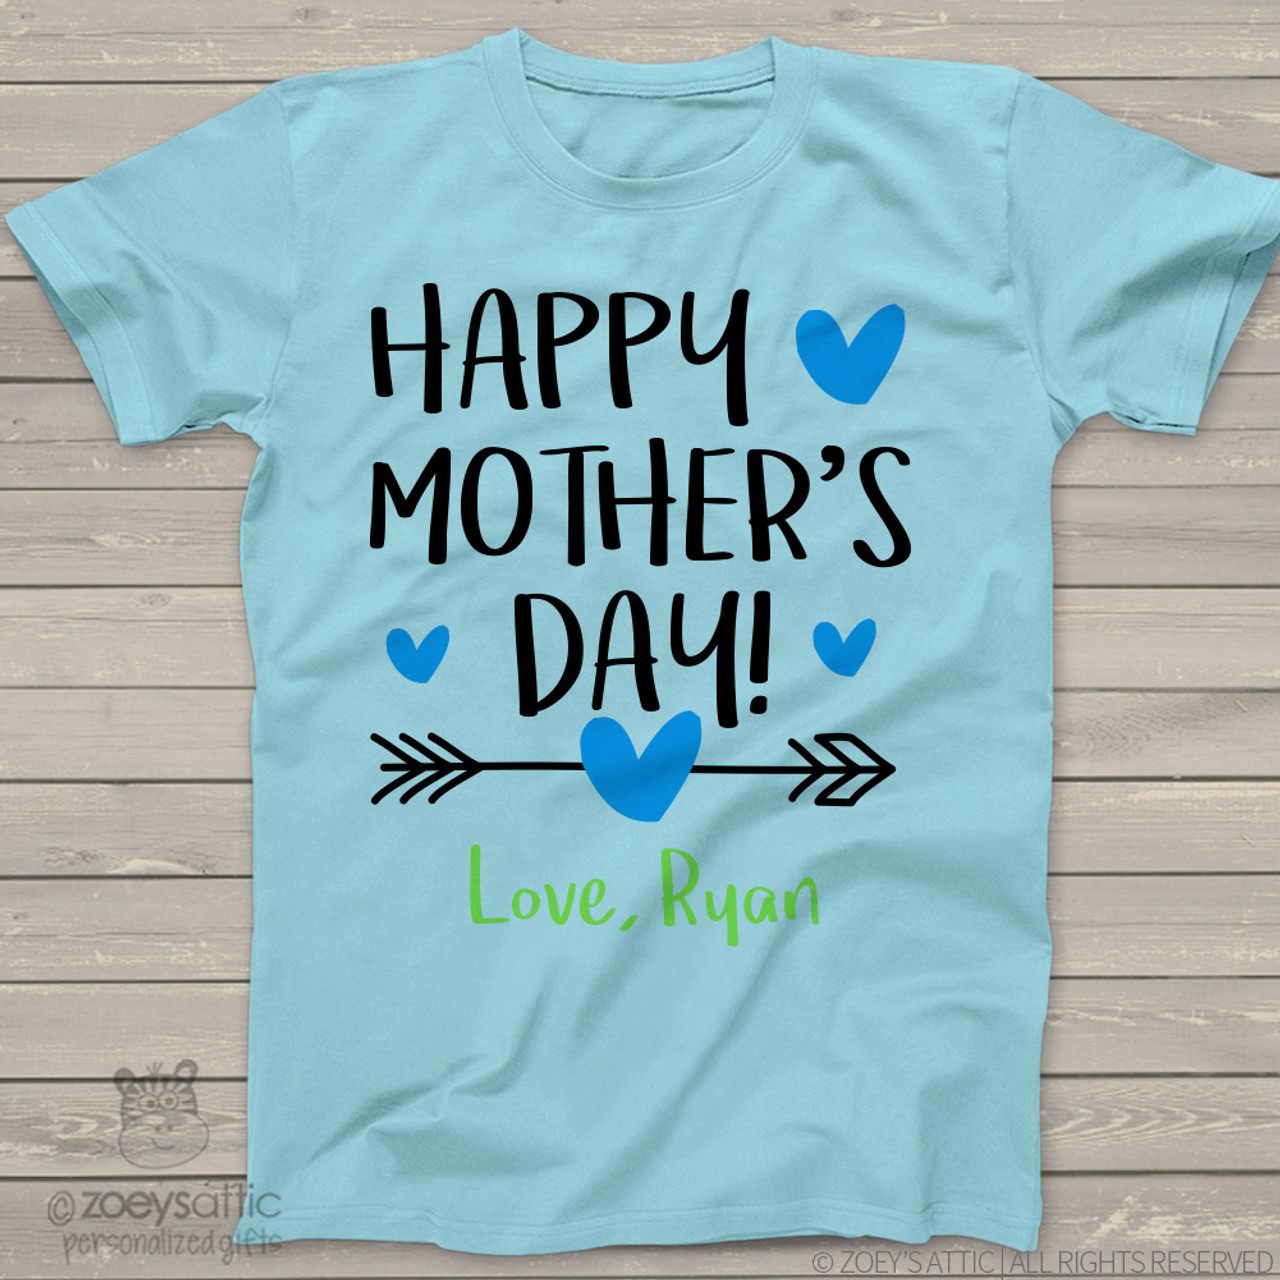 c7a352c2 boys mothers day tshirt, happy mothers day shirt